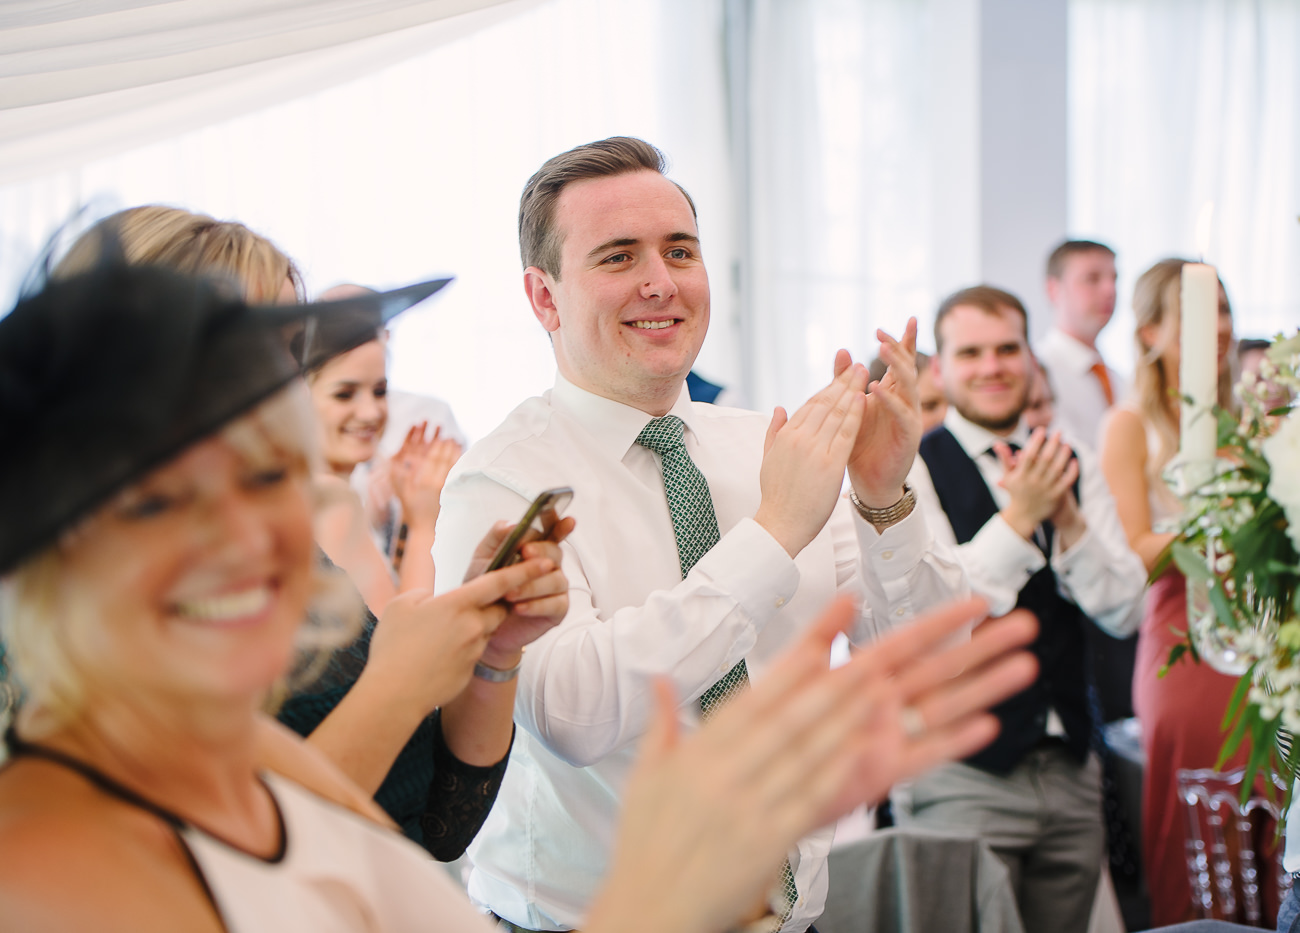 Wedding guests clapping hands for bride and groom entrance